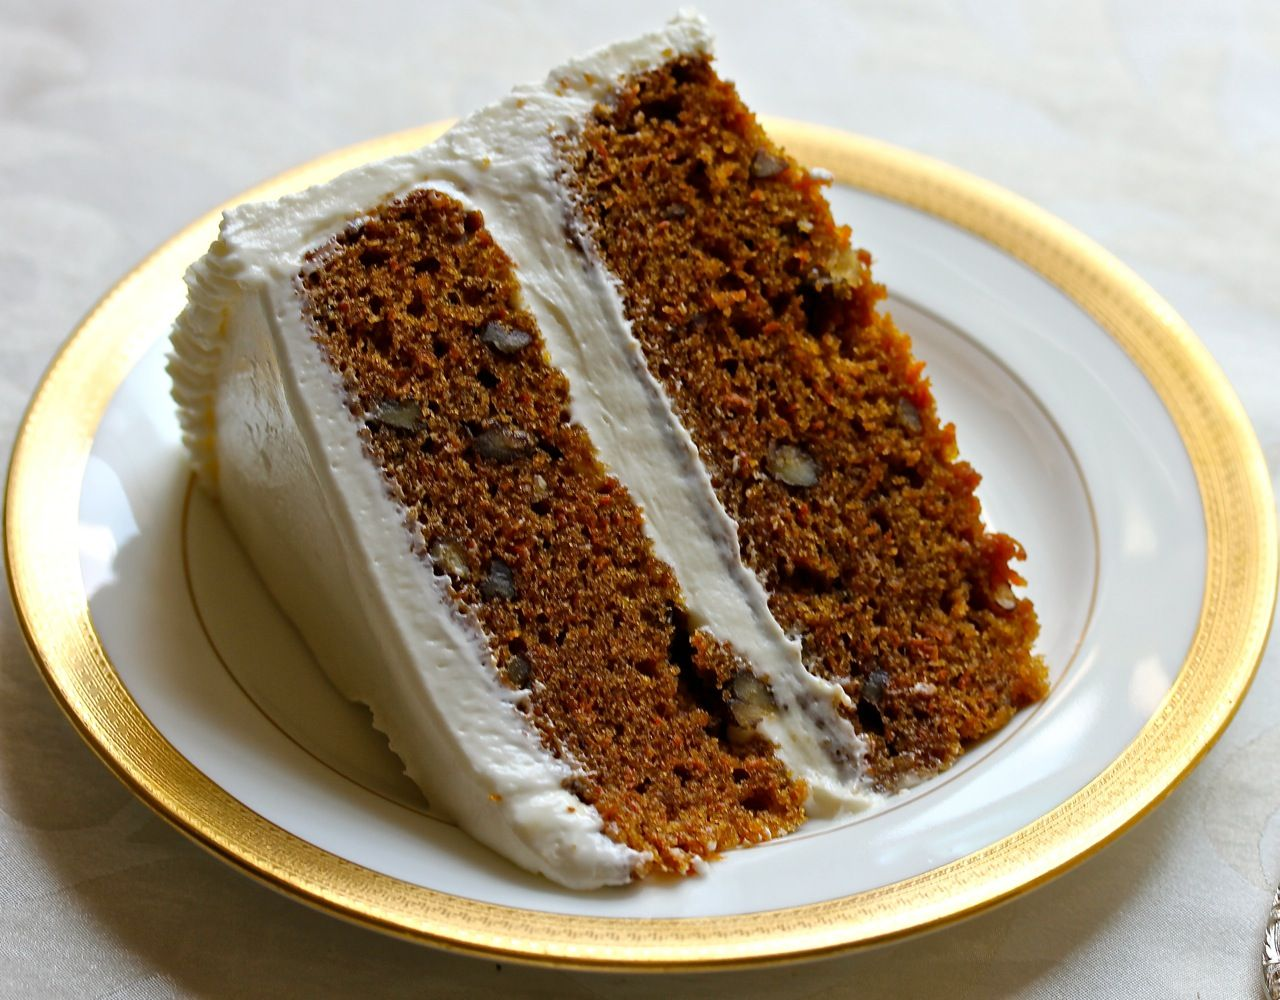 Carrot Cake Recipe | YUM | Pinterest | Pastry chef, White houses and ...